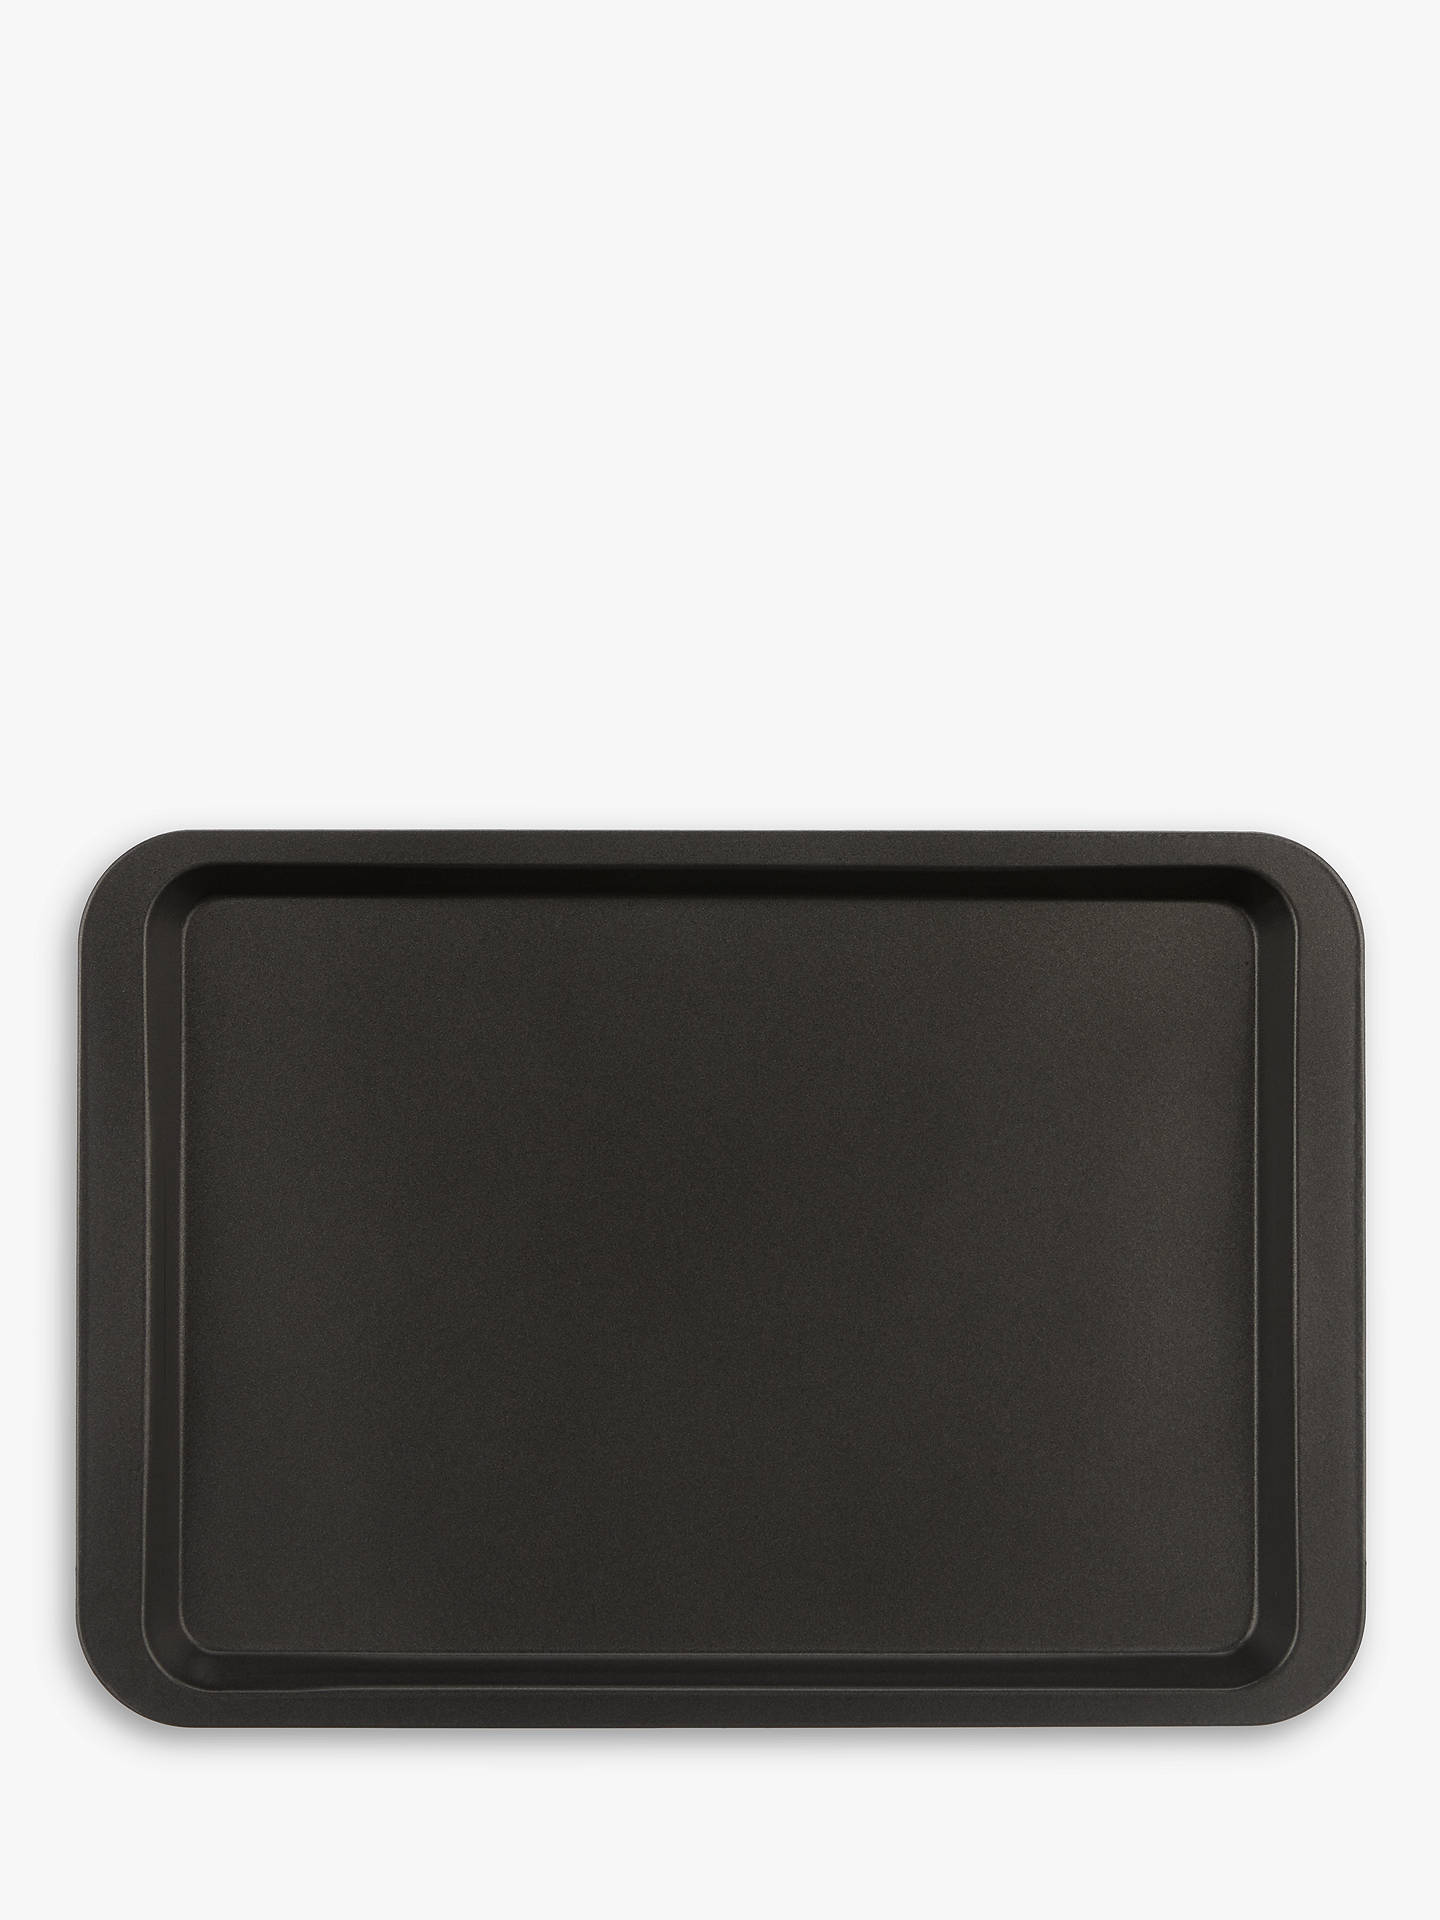 BuyJohn Lewis & Partners Classic Oven Tray, L34cm Online at johnlewis.com